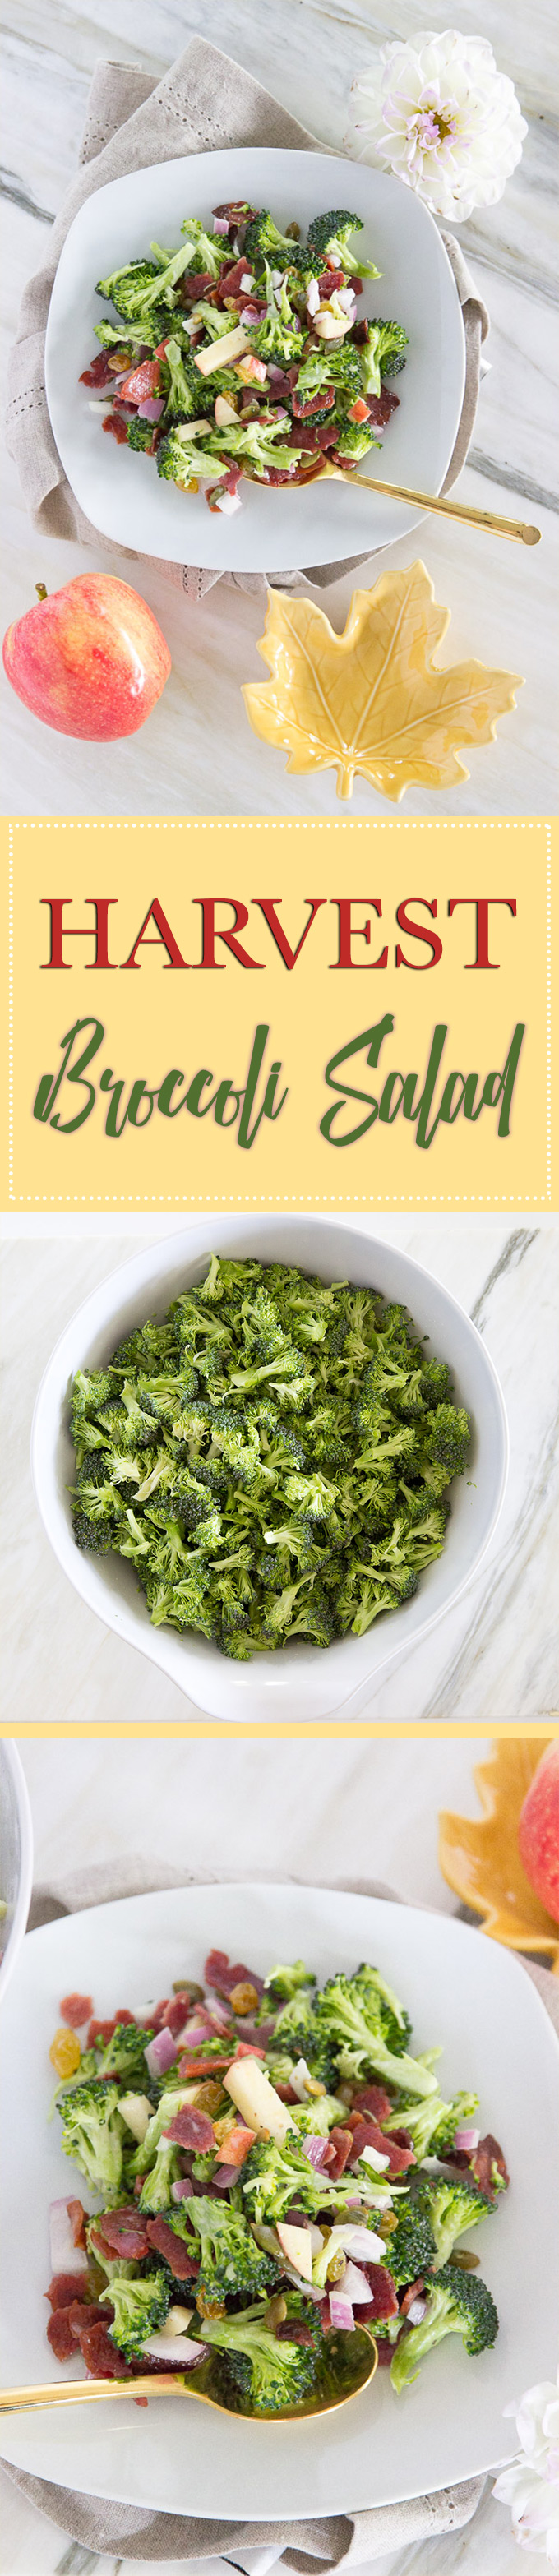 harvest broccoli salad recipe for potlucks and family dinners